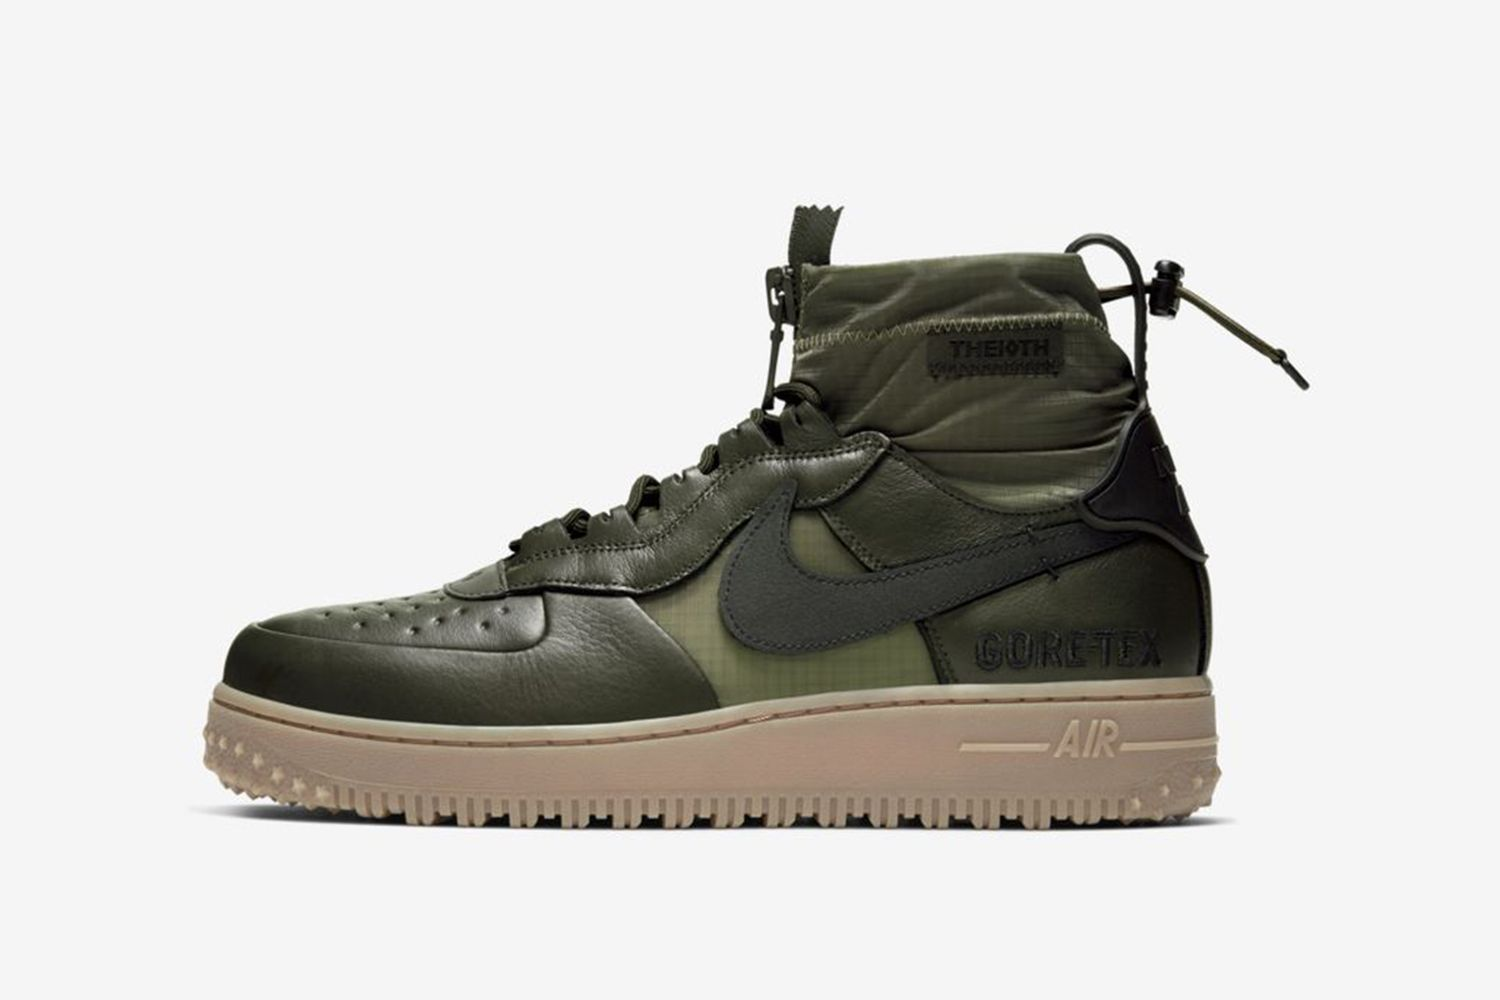 Air Force 1 Winter GORE-TEX Boot